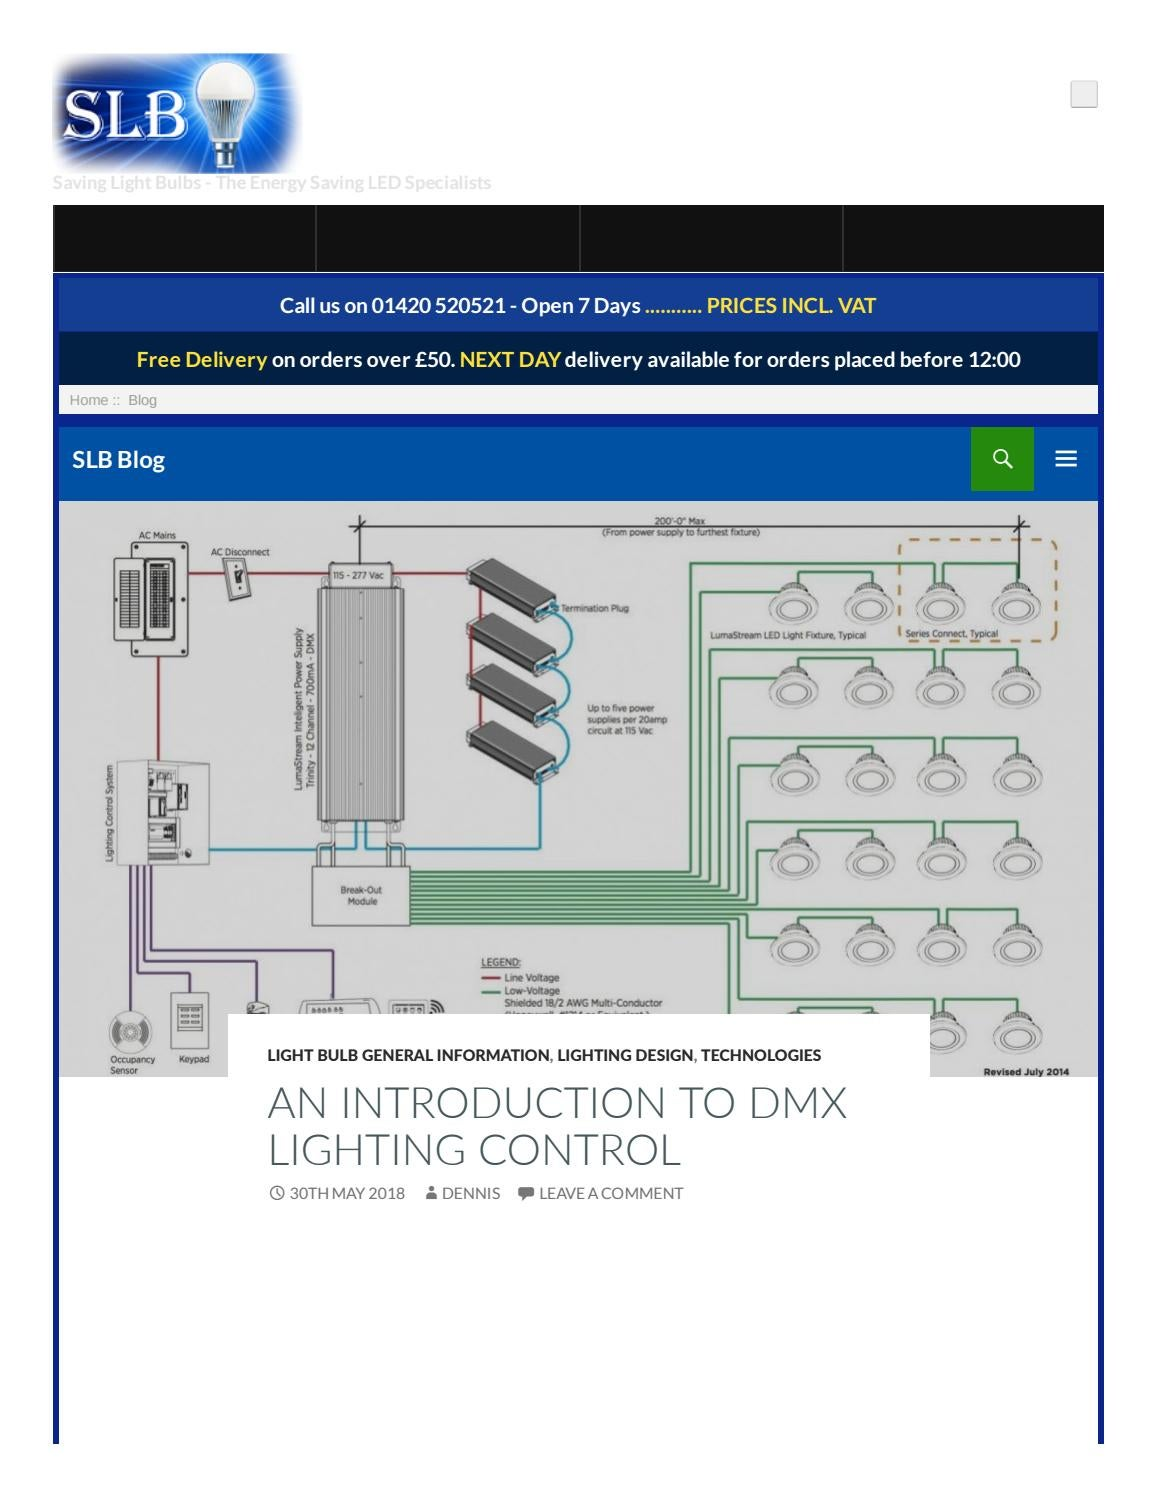 AN INTRODUCTION TO DMX LIGHTING CONTROL by Saving Light